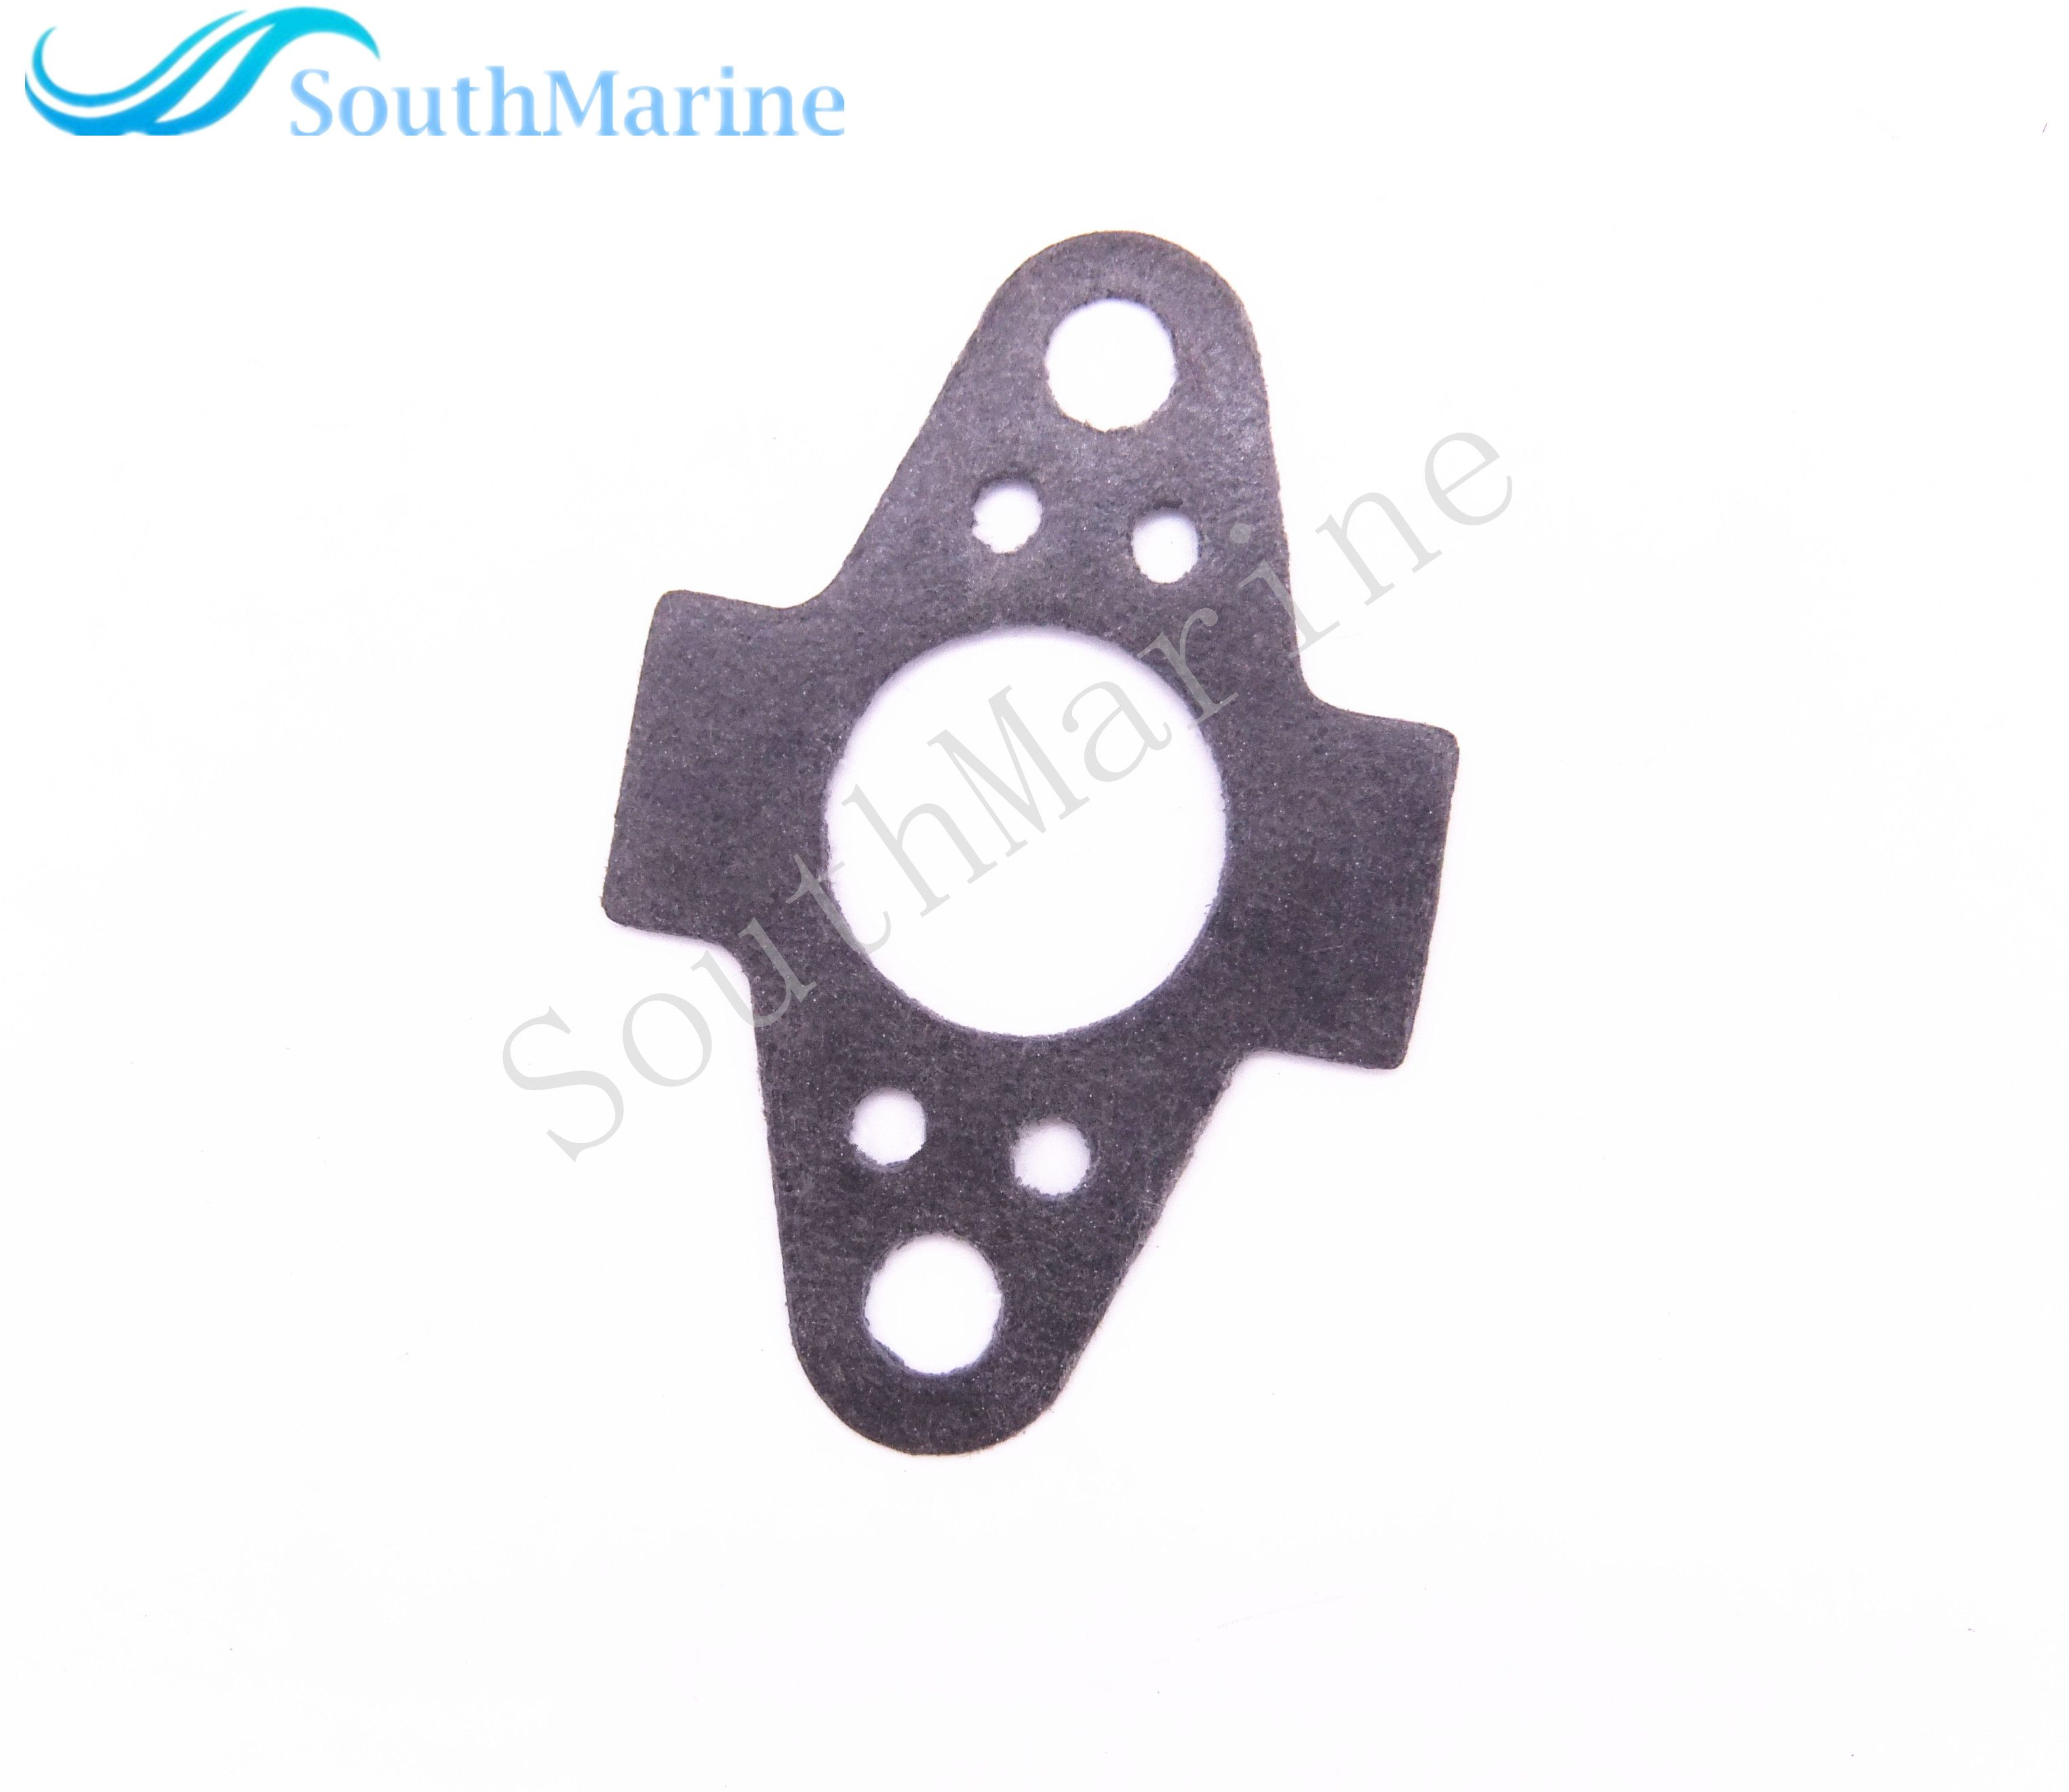 Outboard Engine F2.6-04000018 Carburetor Gasket for Parsun 4-Stroke F2.6 Boat Motor Free Shipping